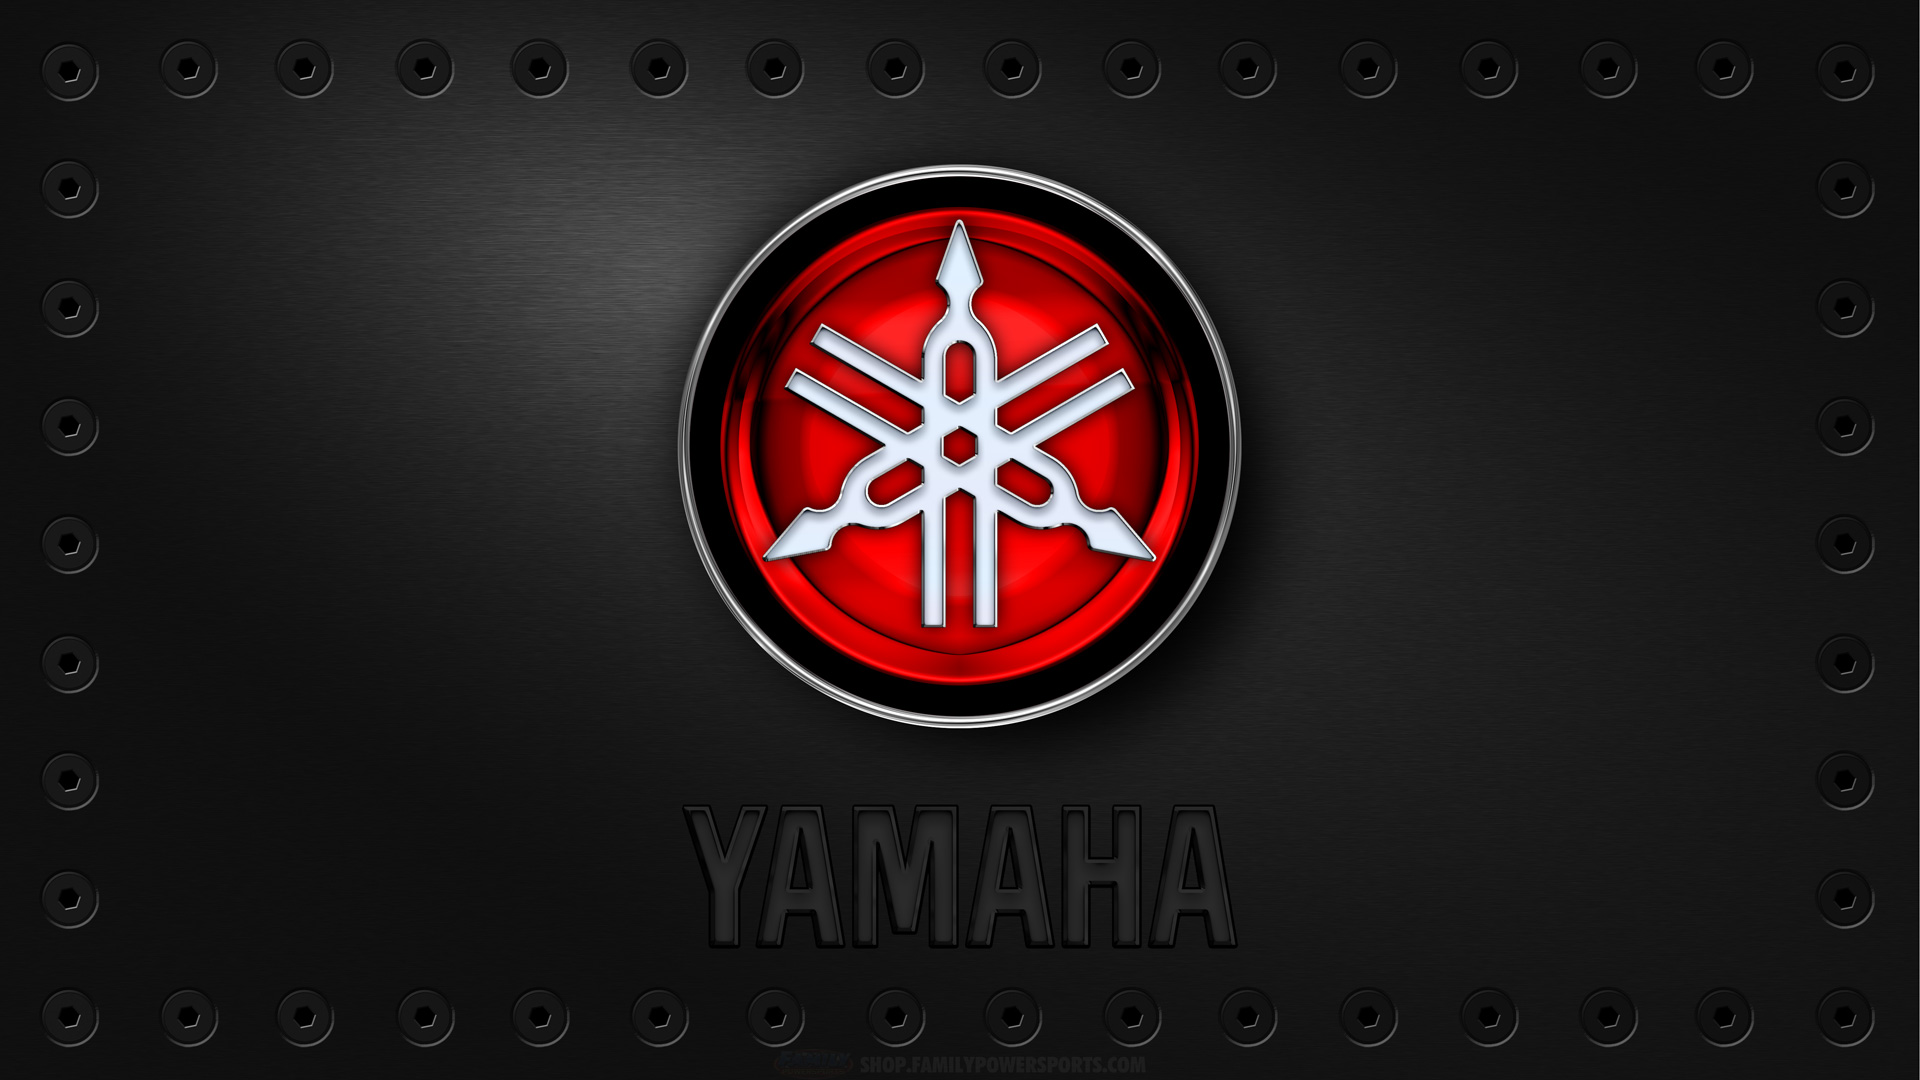 HD Yamaha Wallpaper Background Images For Download 1920x1080